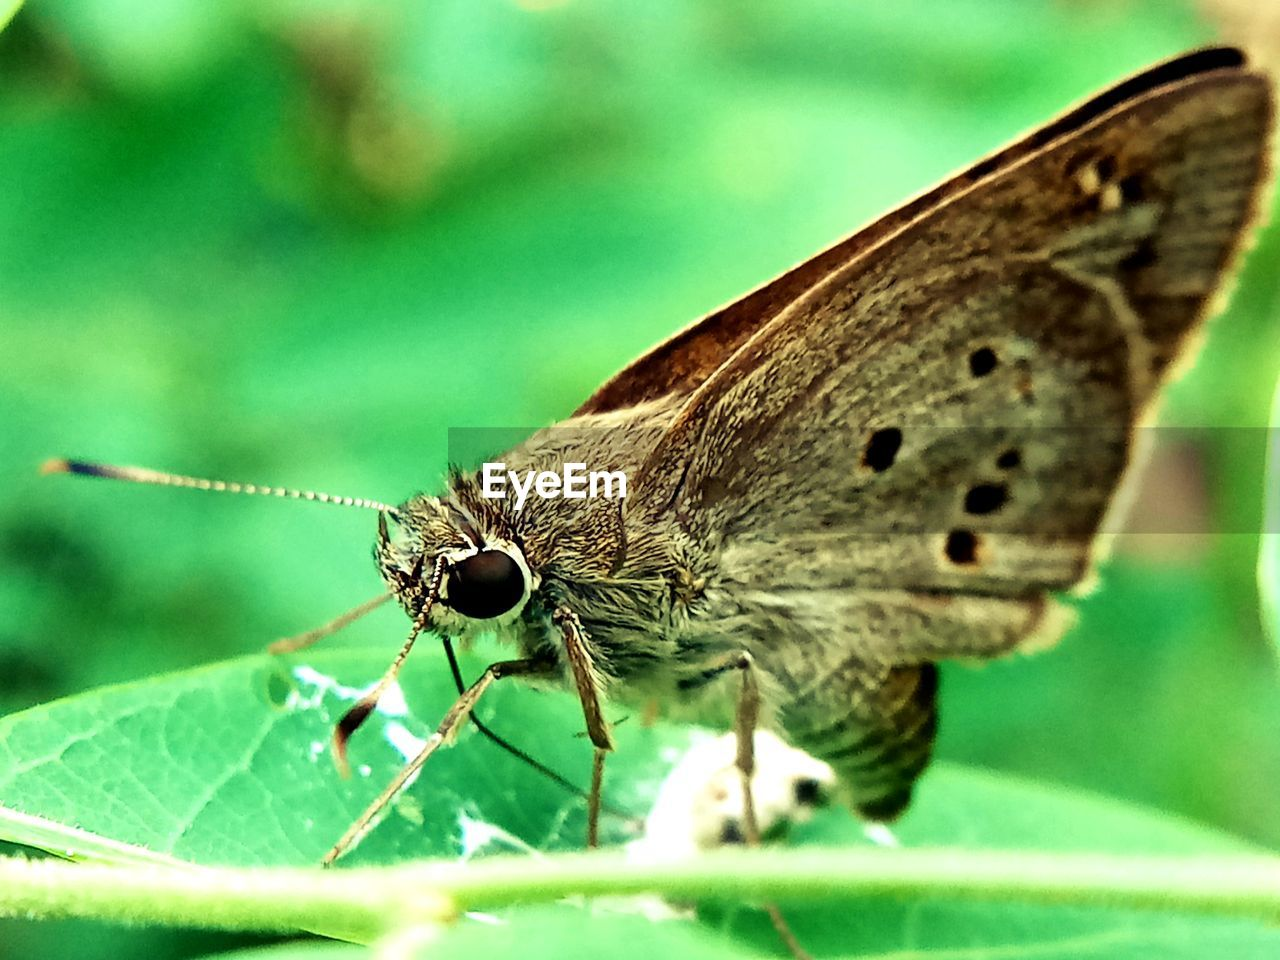 invertebrate, insect, one animal, animal themes, animals in the wild, animal, animal wildlife, close-up, plant part, animal wing, leaf, nature, no people, selective focus, green color, day, plant, beauty in nature, focus on foreground, animal body part, butterfly - insect, butterfly, animal eye